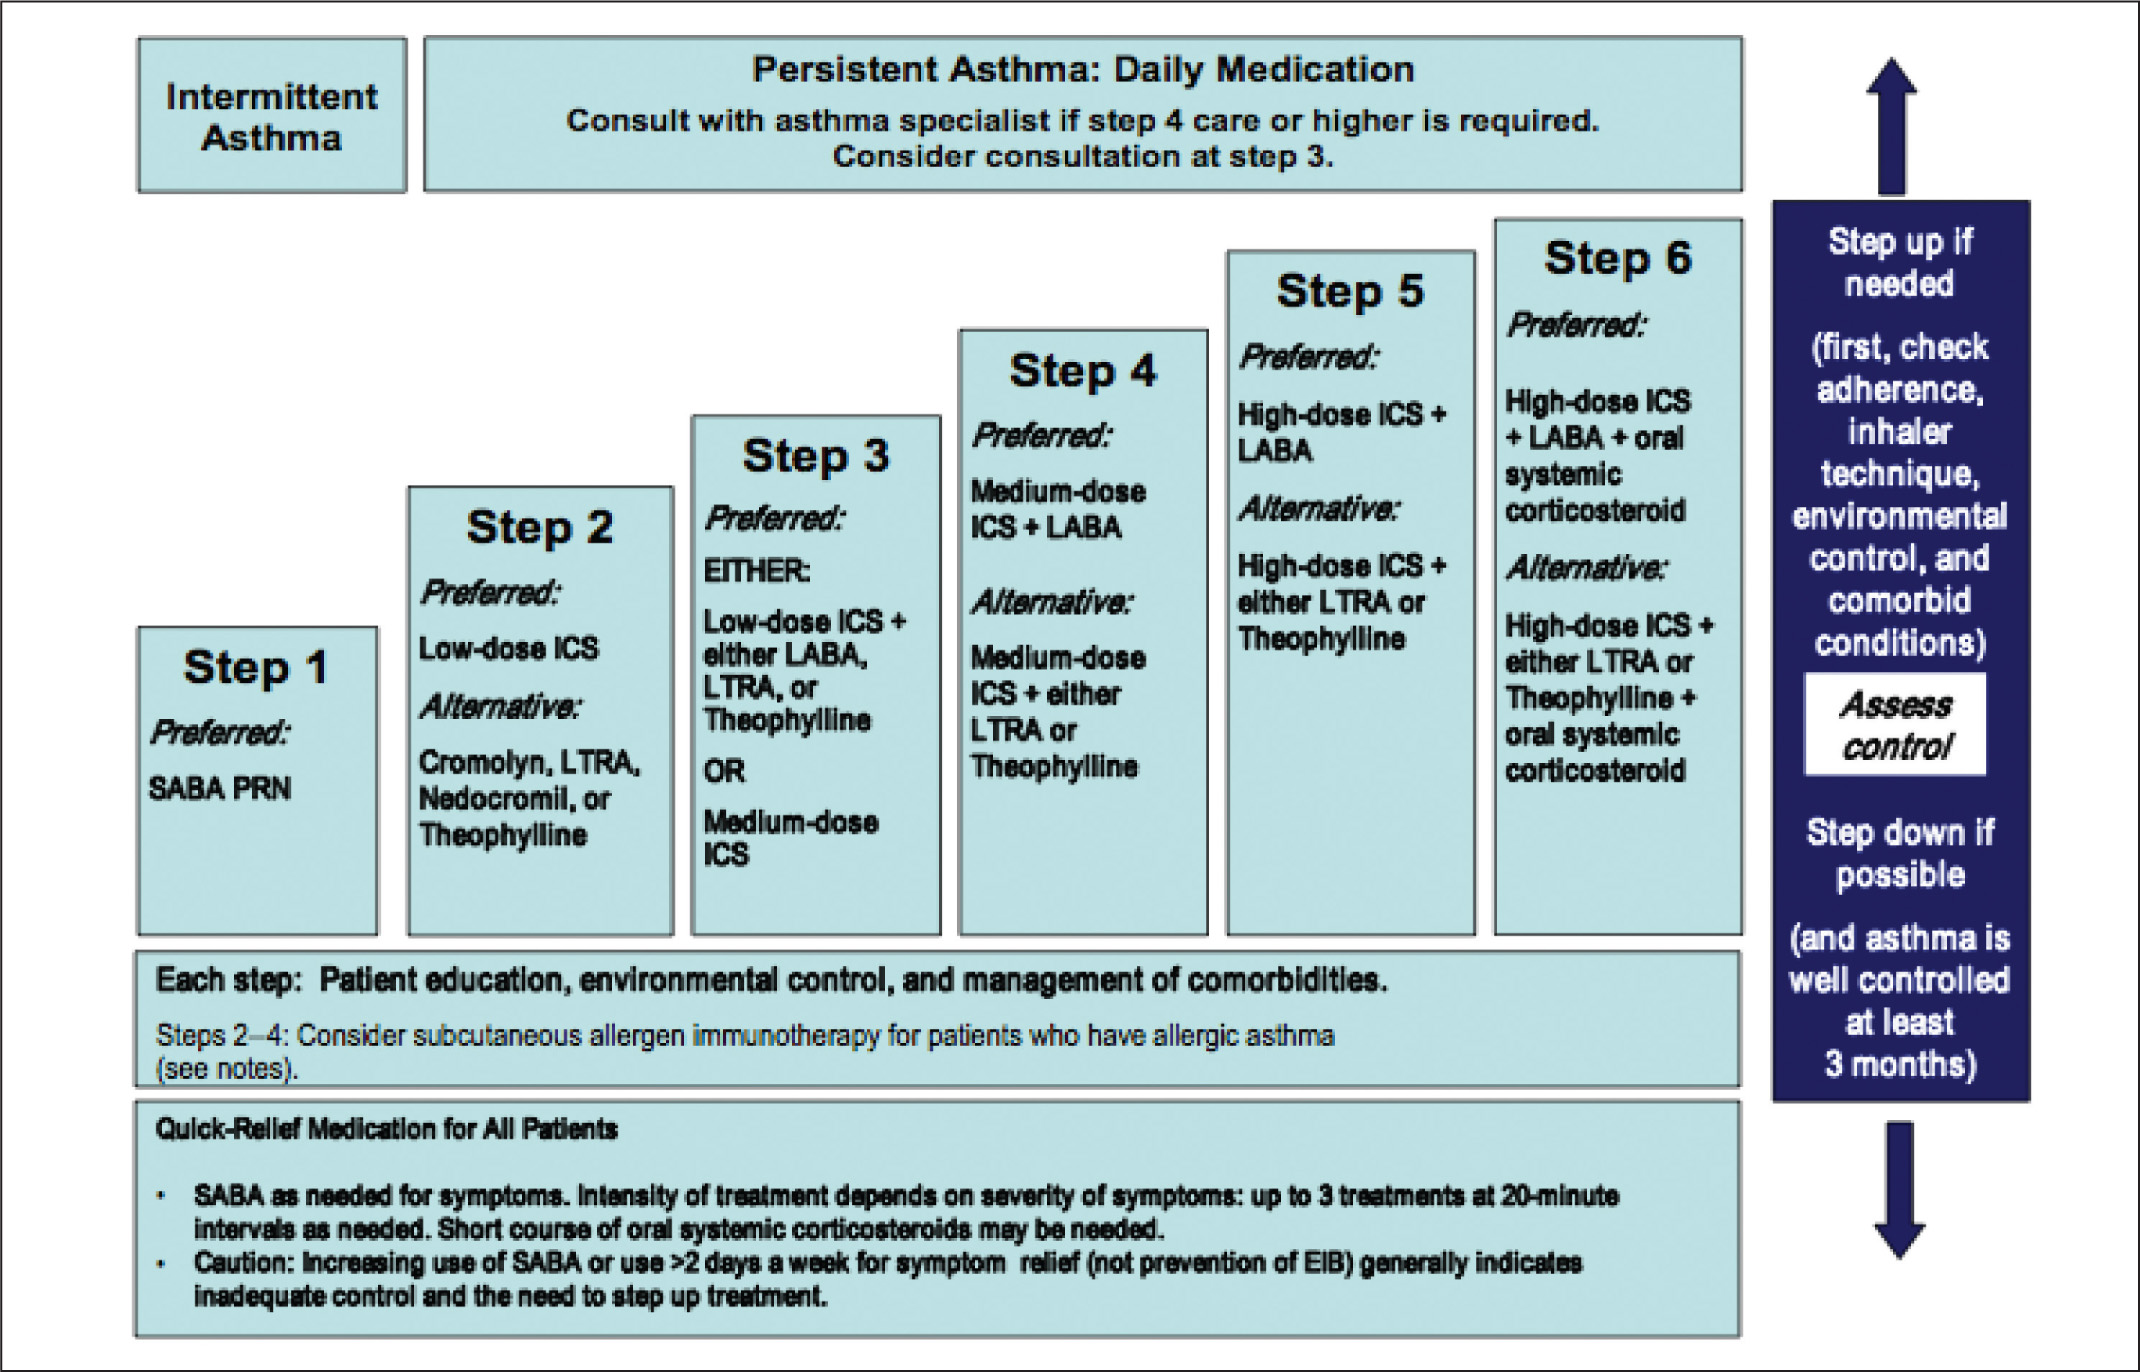 Stepwise approach to therapy in children aged 5 to 11 years, as illustrated in the Expert-Panel Report 3 (EPR-3).3 ICS = inhaled corticosteroids; LABA = long-acting beta-2-agonists; LTRA = leukotriene receptor antagonists; SABA = short-acting beta-2-agonists.